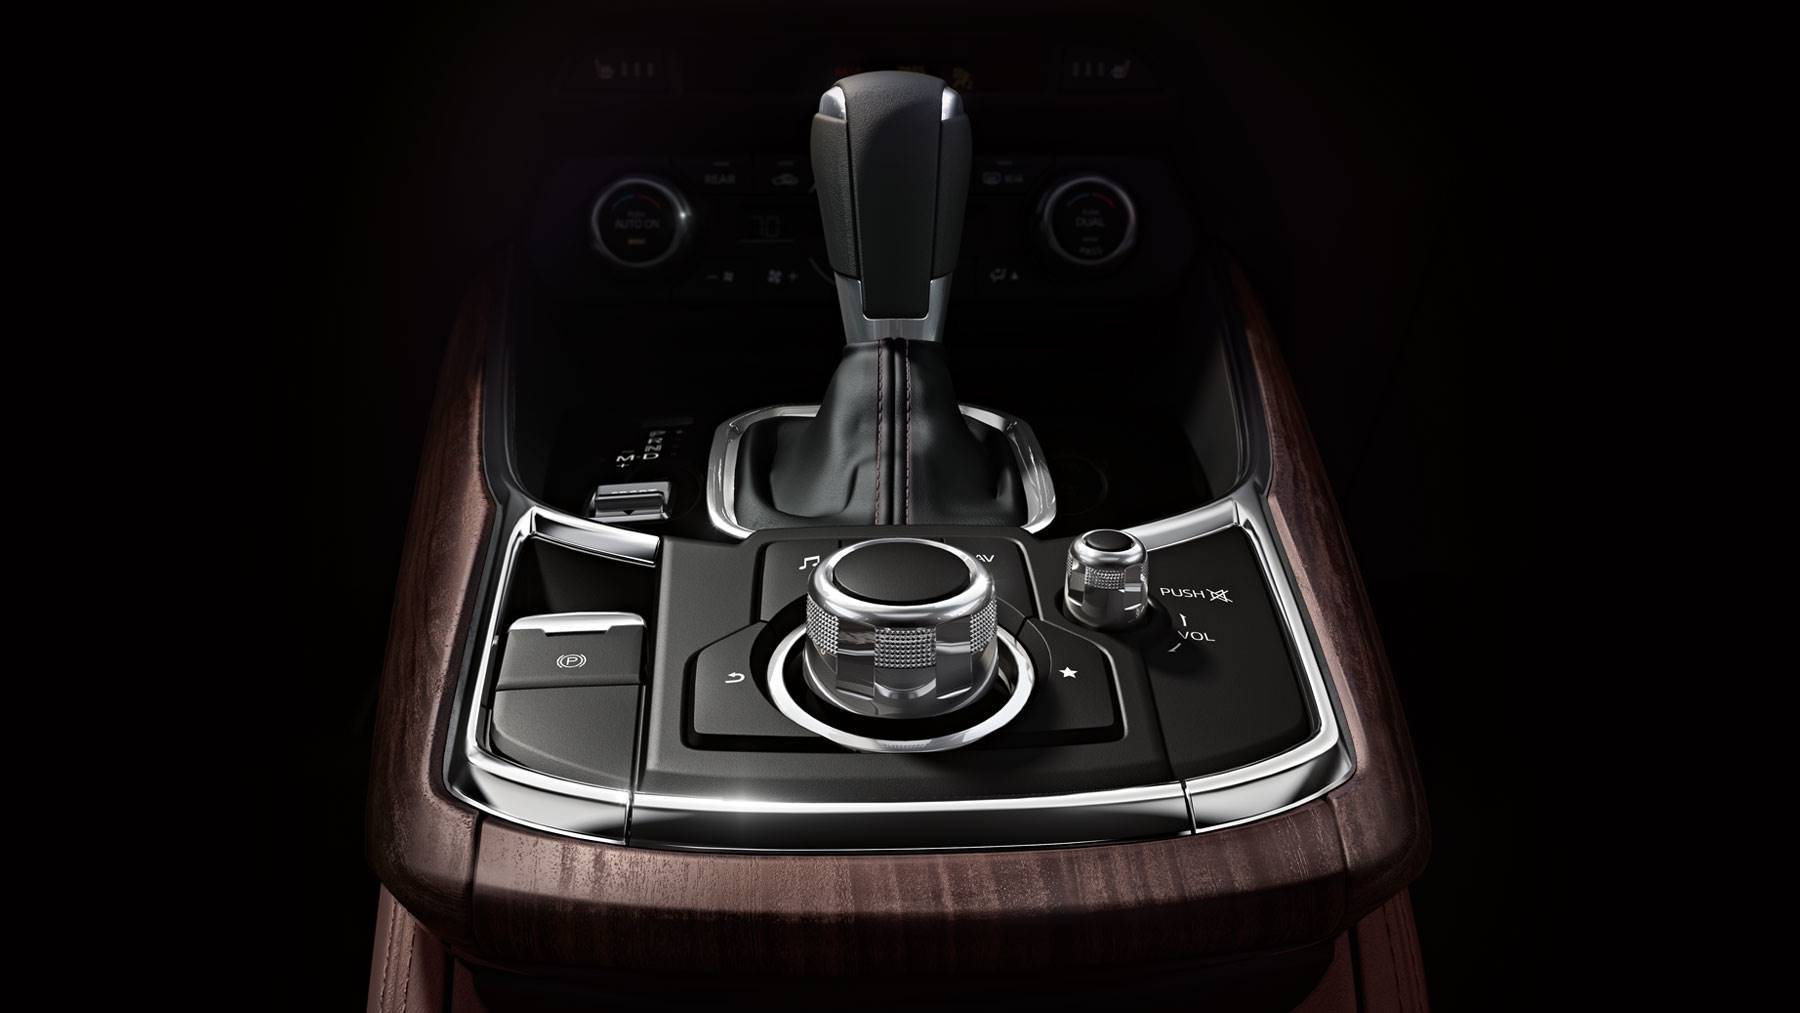 Stylish Interior Touches in the CX-9